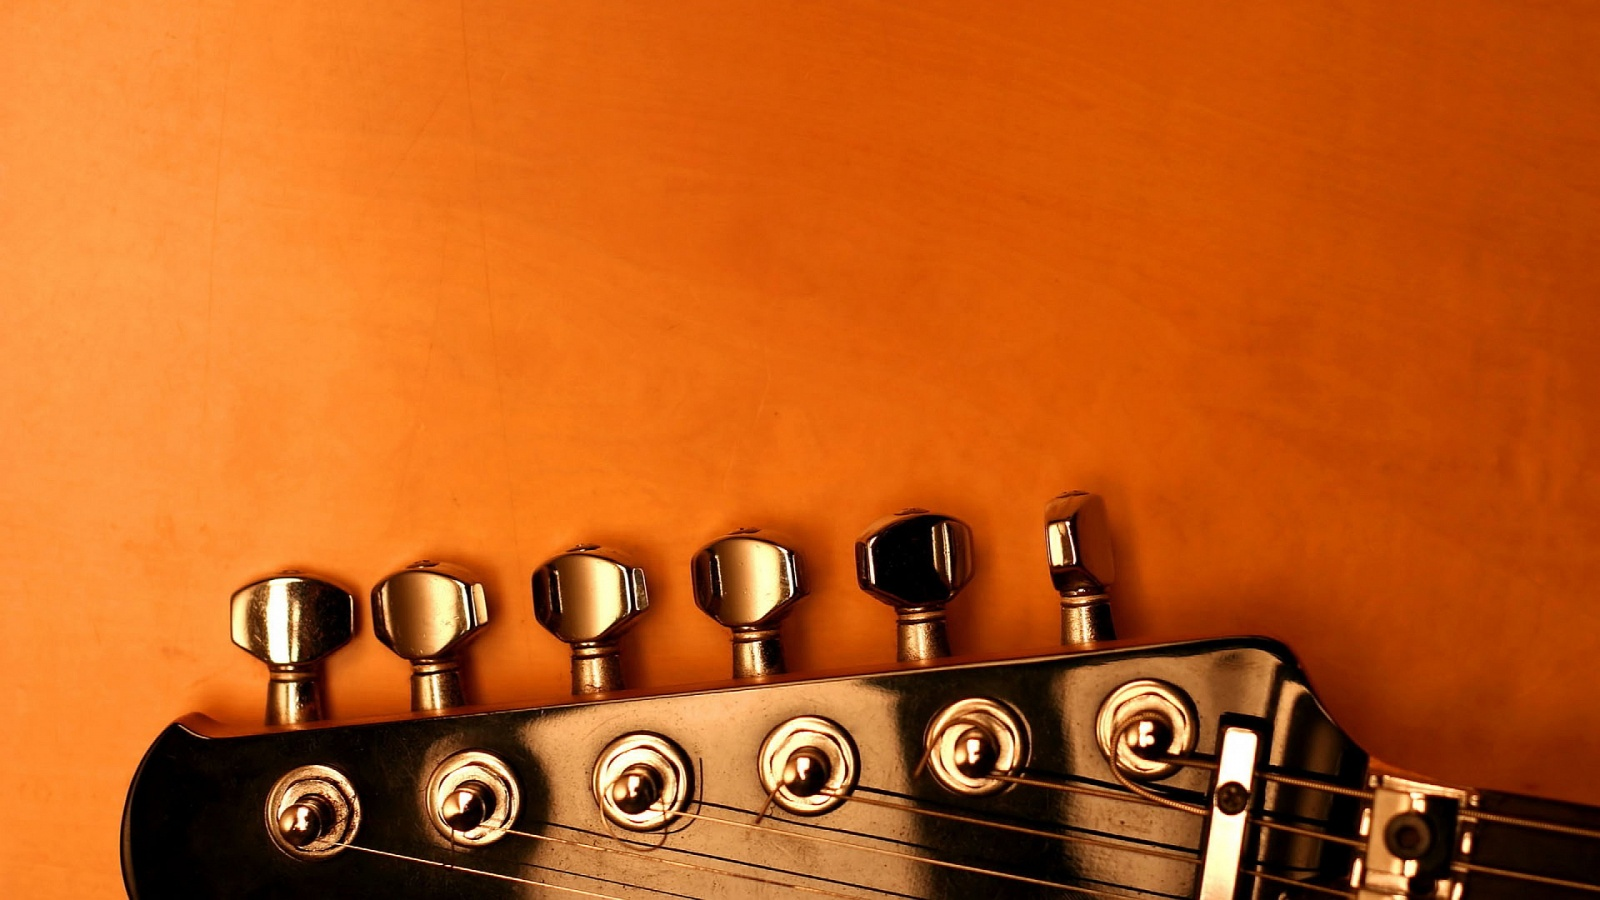 Guitar tuning keys